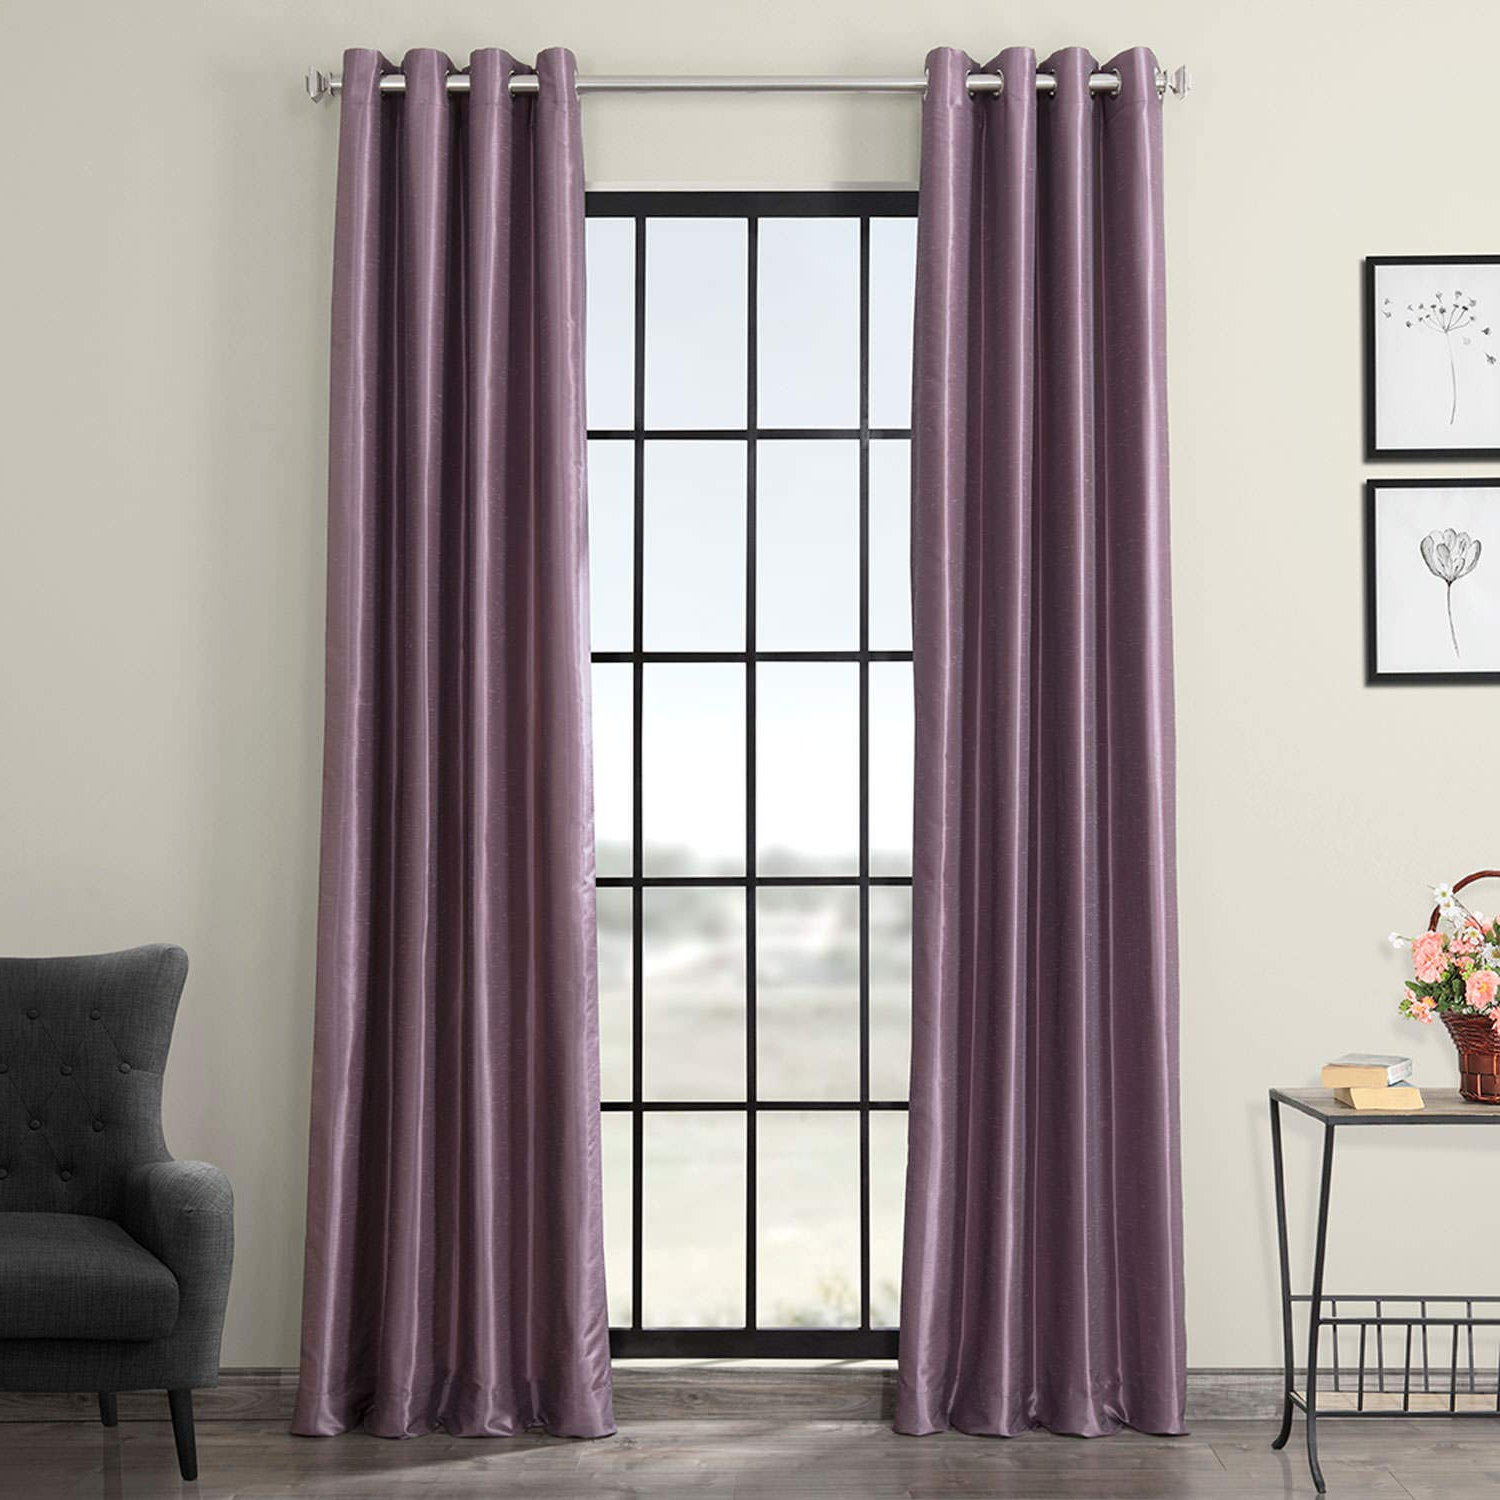 Well Known Half Price Drapes Pdch Kbs11 84 Grbo Grommet Blackout Vintage Textured Faux Dupioni Silk Curtain, Smokey Plum For True Blackout Vintage Textured Faux Silk Curtain Panels (View 20 of 20)